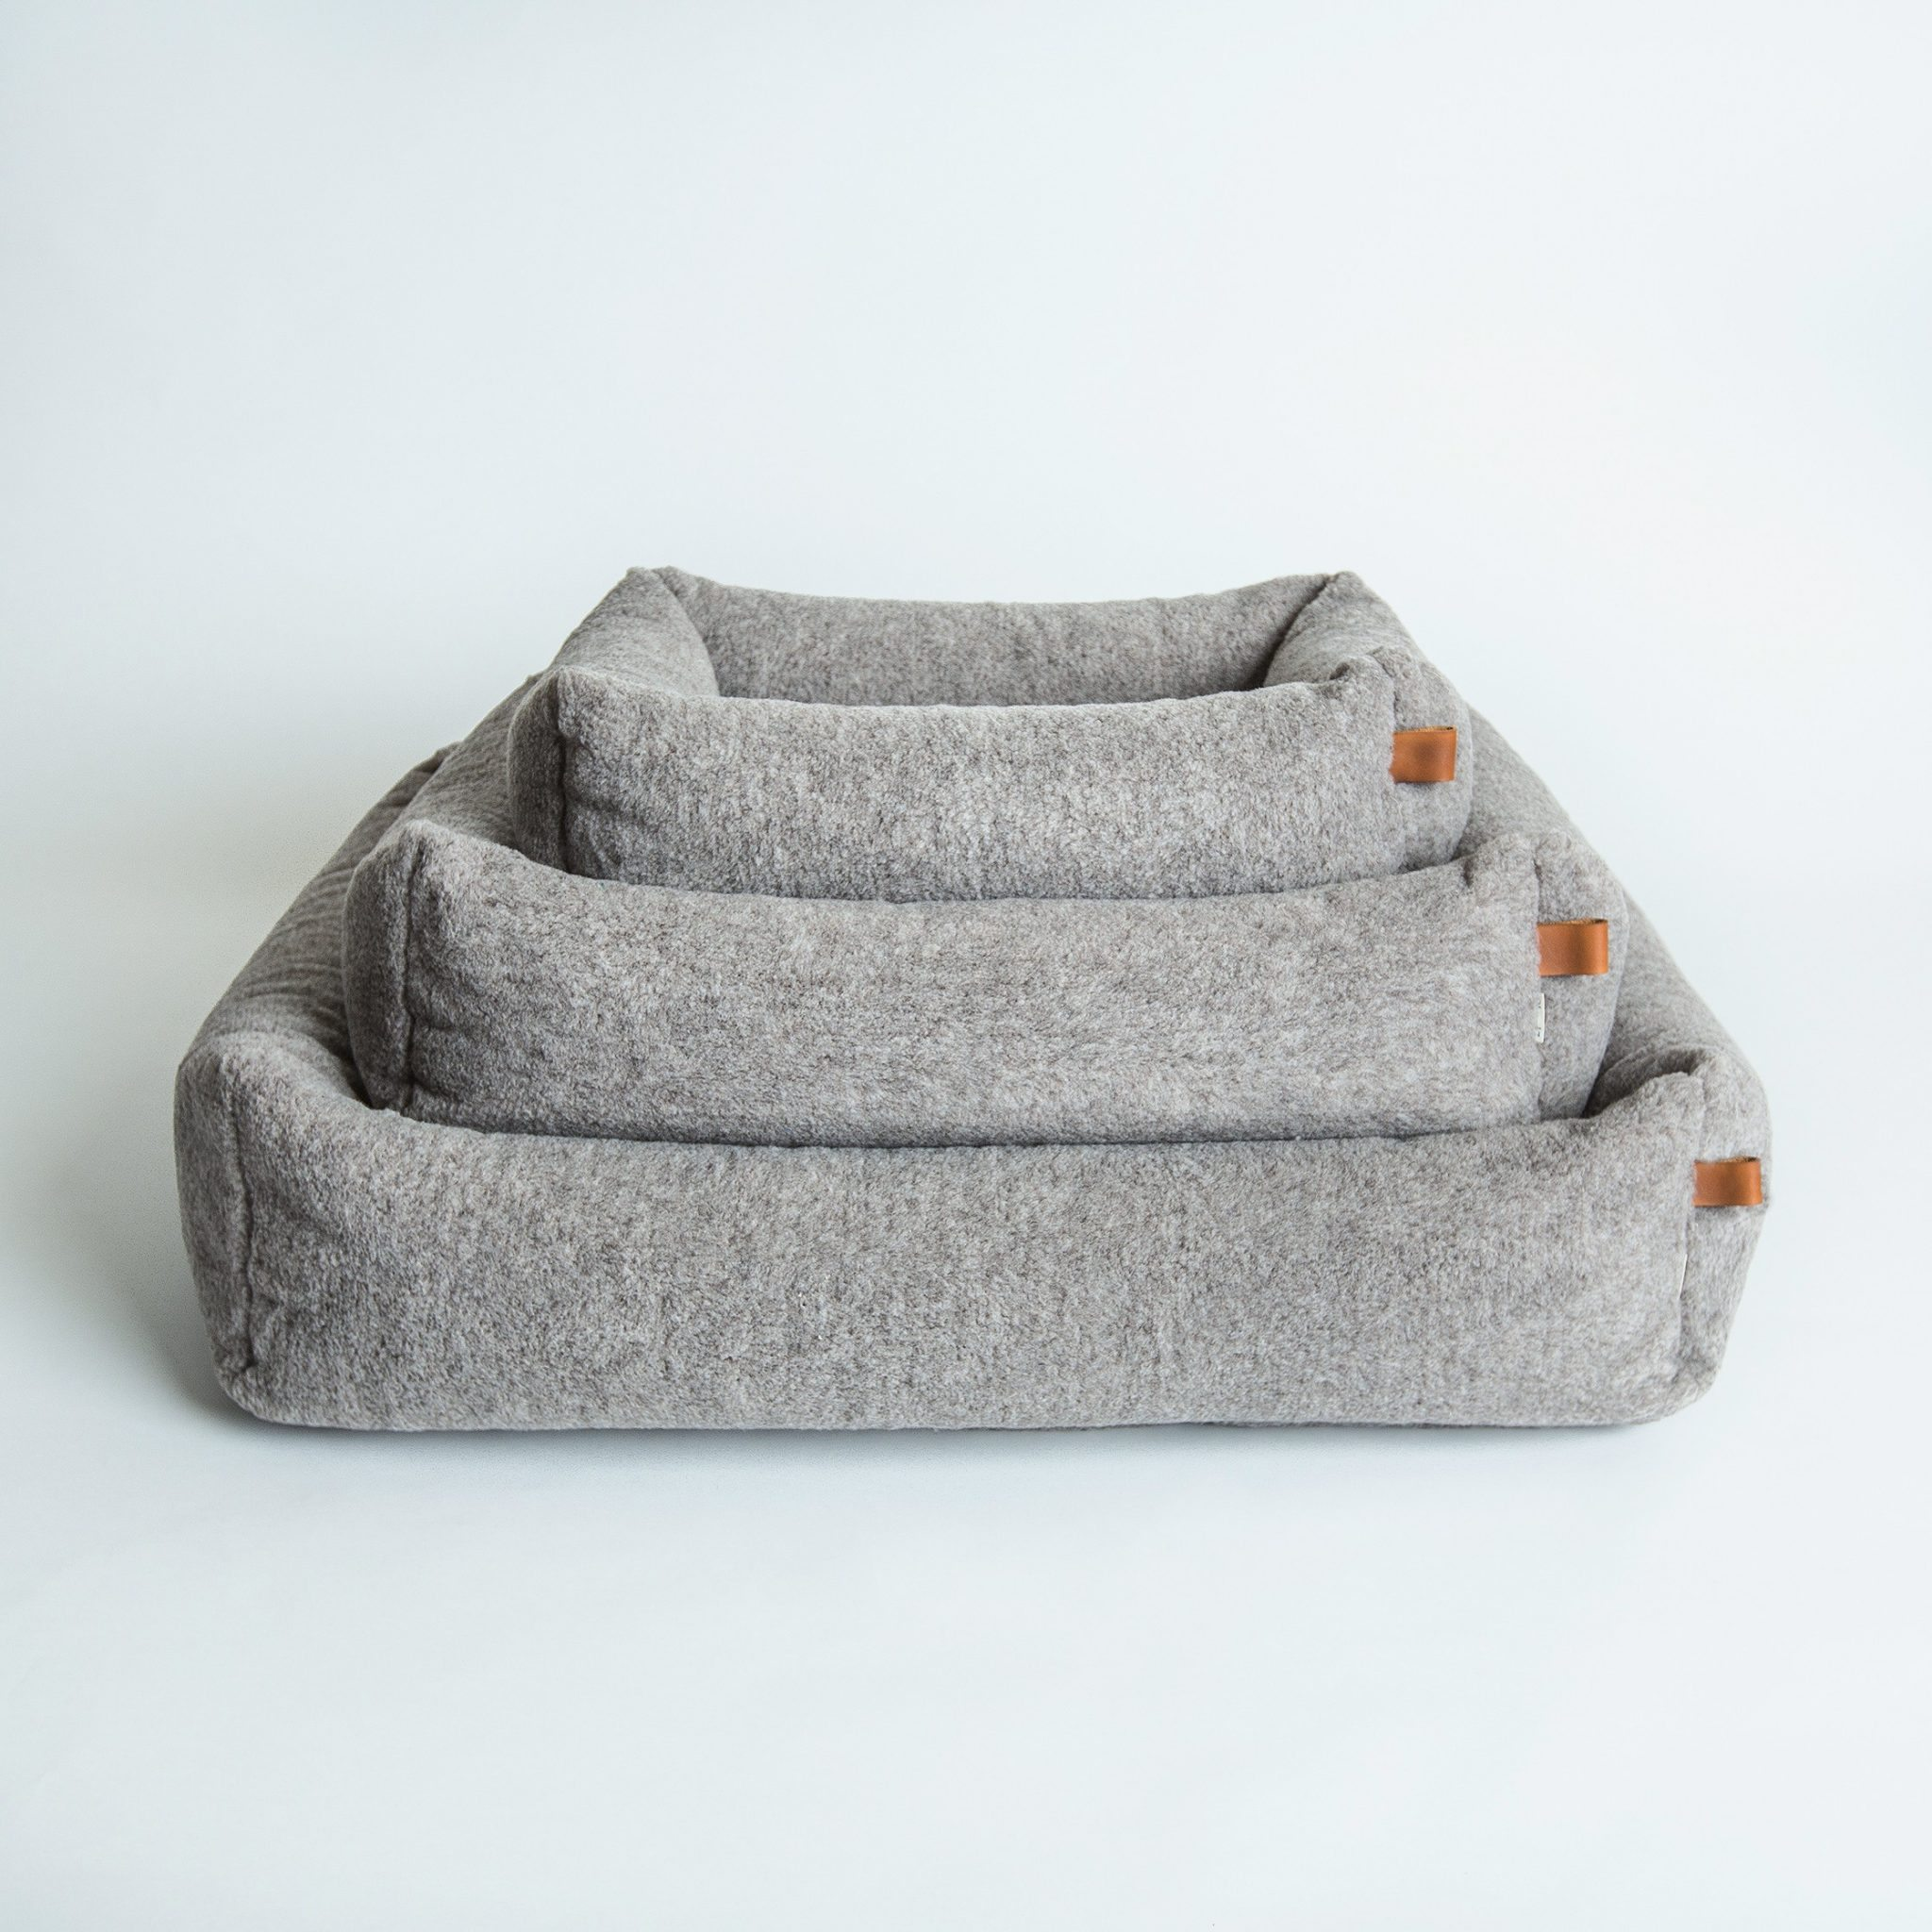 online snuggle check buy chequers bed grey luxury blanket store beds cave dog cosy